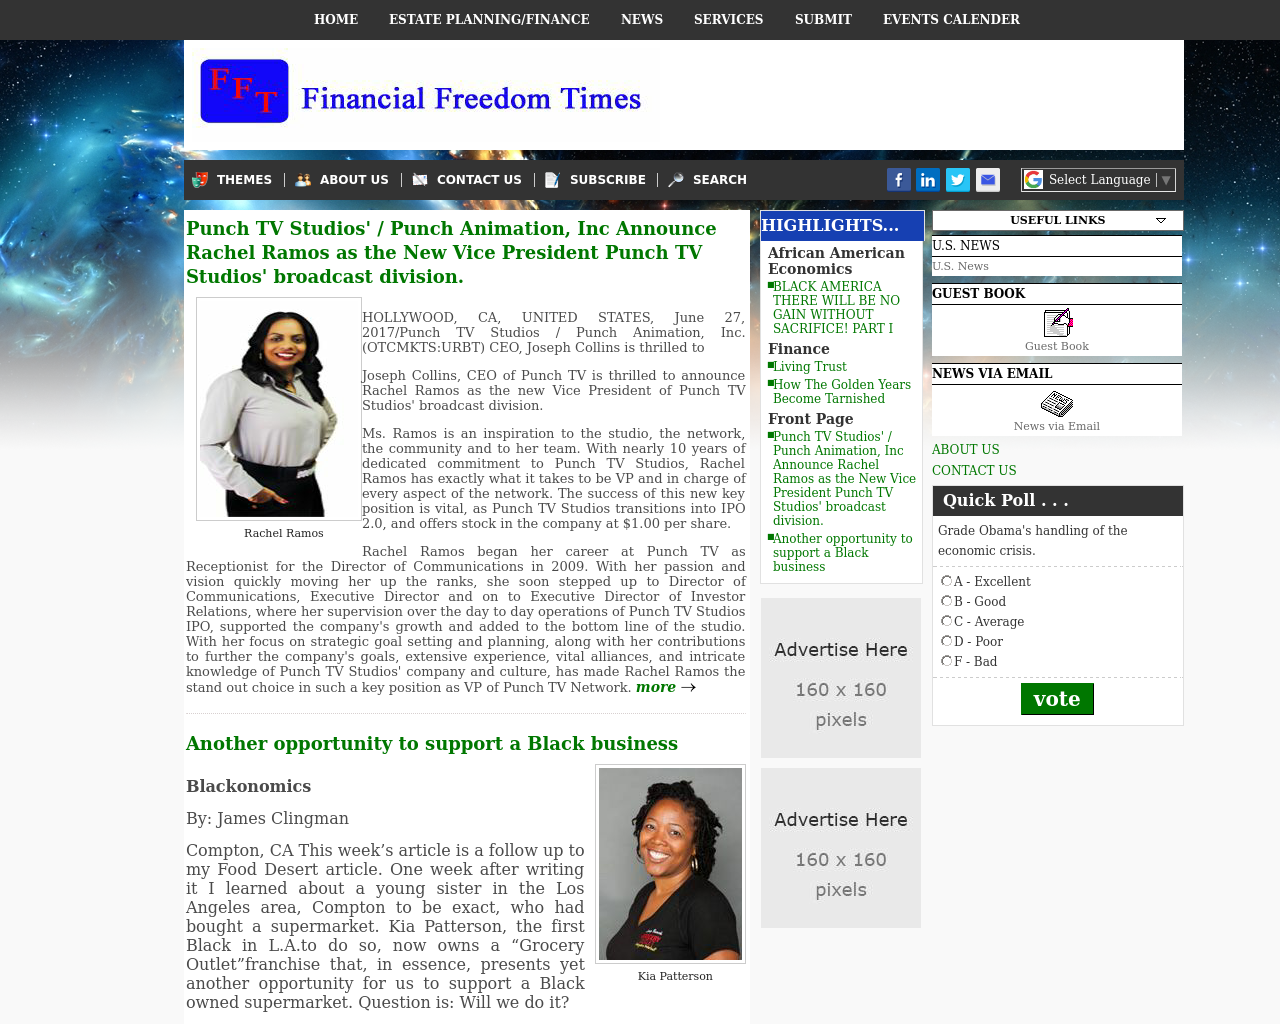 Financial-Freedom-Times-Advertising-Reviews-Pricing